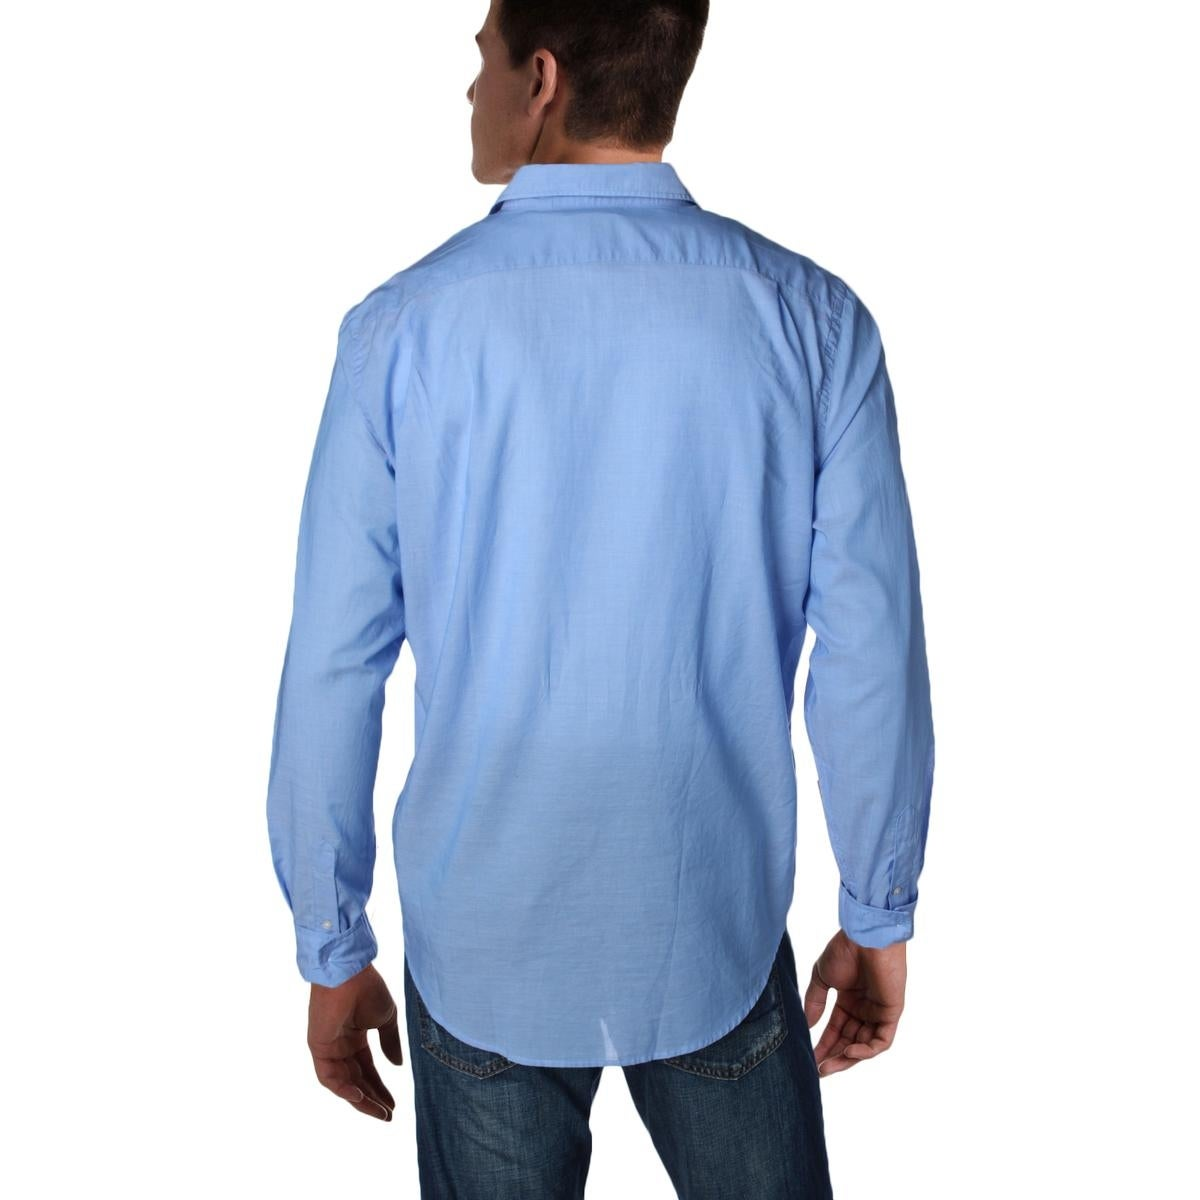 73955dbcfc71 Shop Lacoste Mens Button-Down Shirt Voile Slim Fit - XL - Free Shipping  Today - Overstock - 22311747